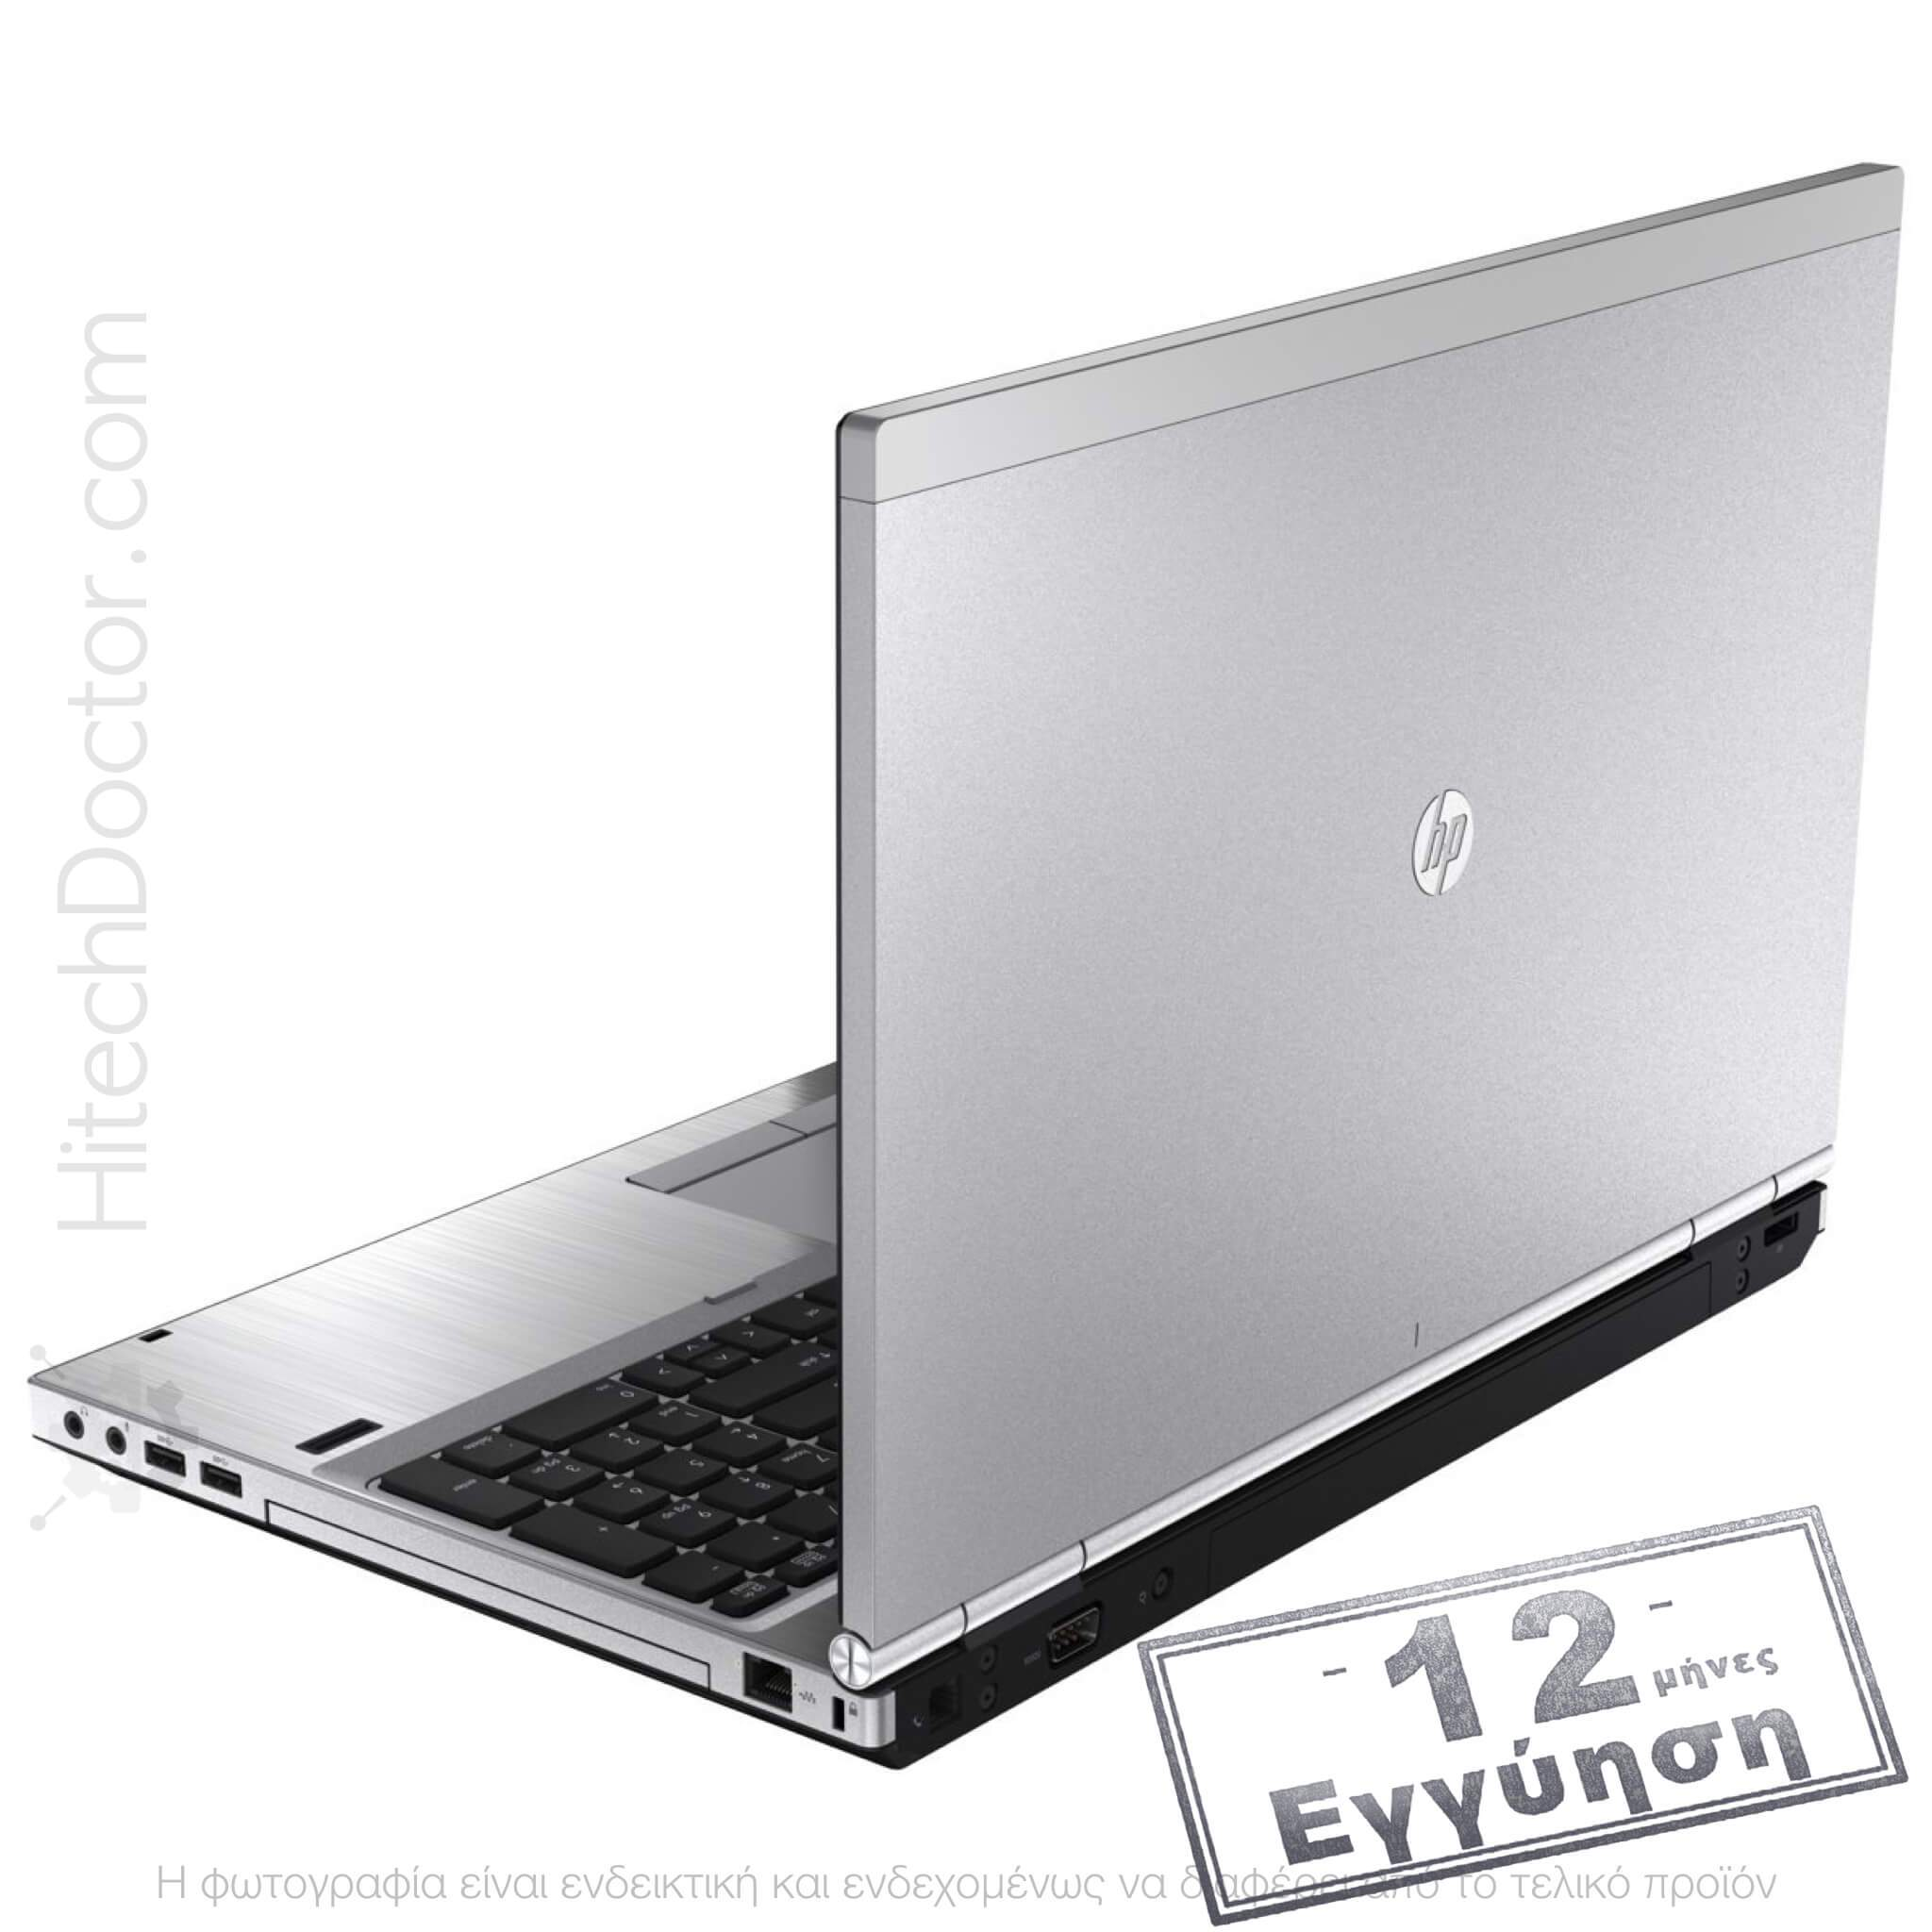 HP EliteBook 8570p - HitechDoctor.com